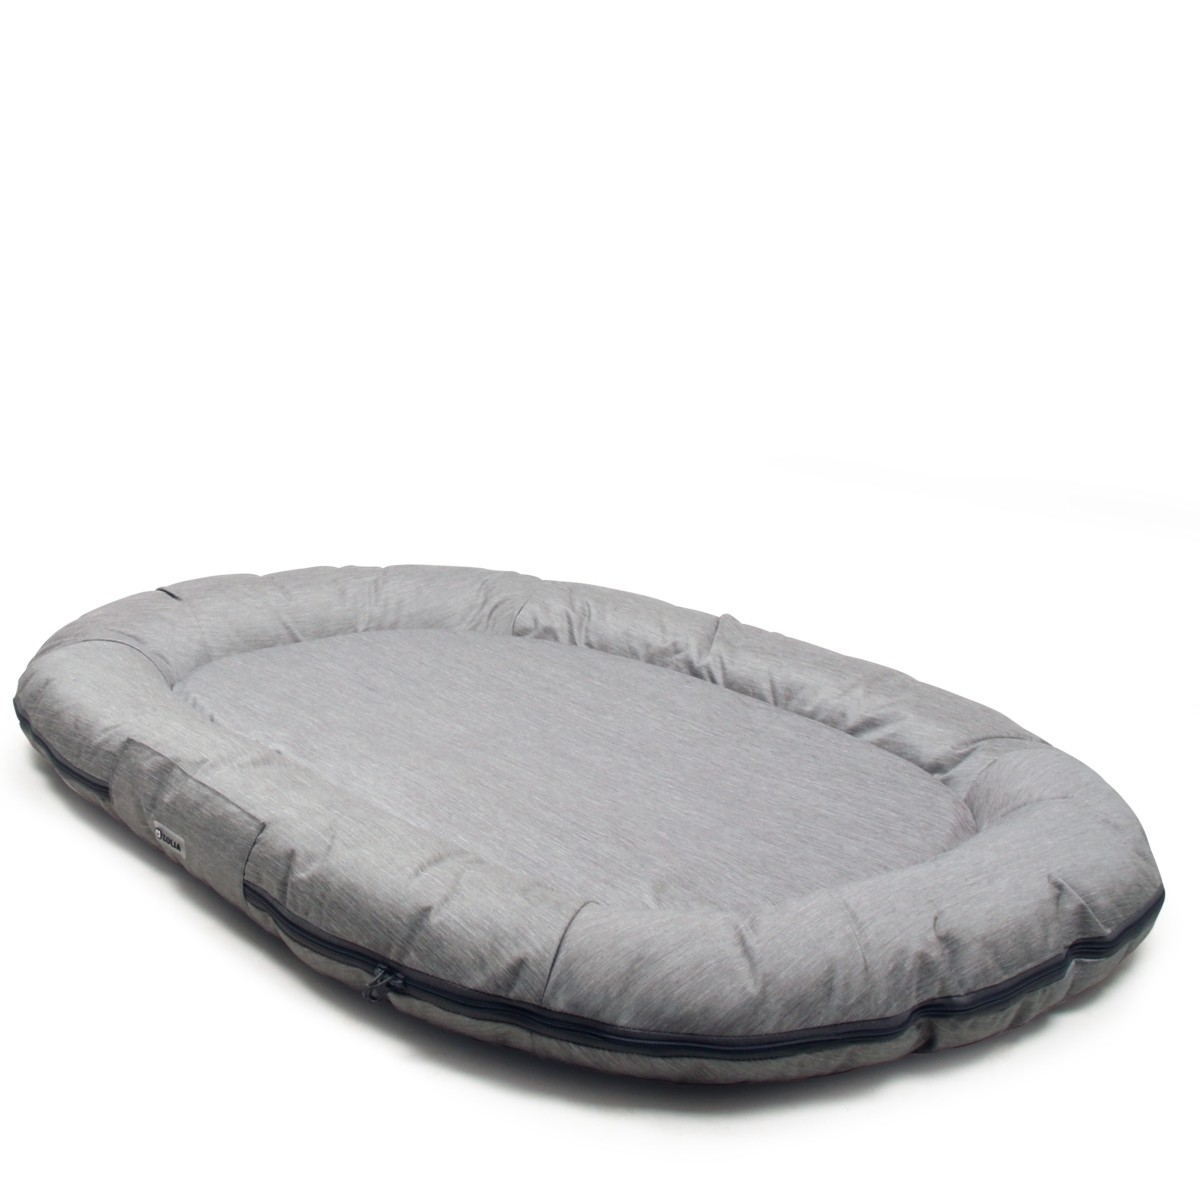 Super Outdoor Dog Mattress